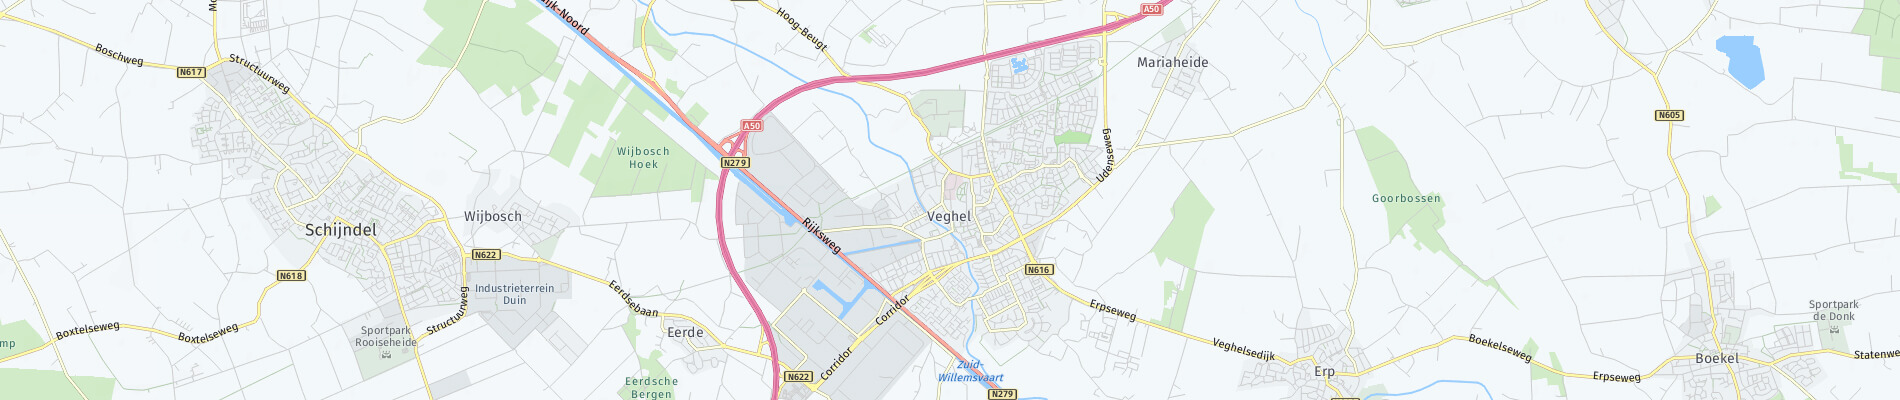 assets/images/cities/veghel.jpg